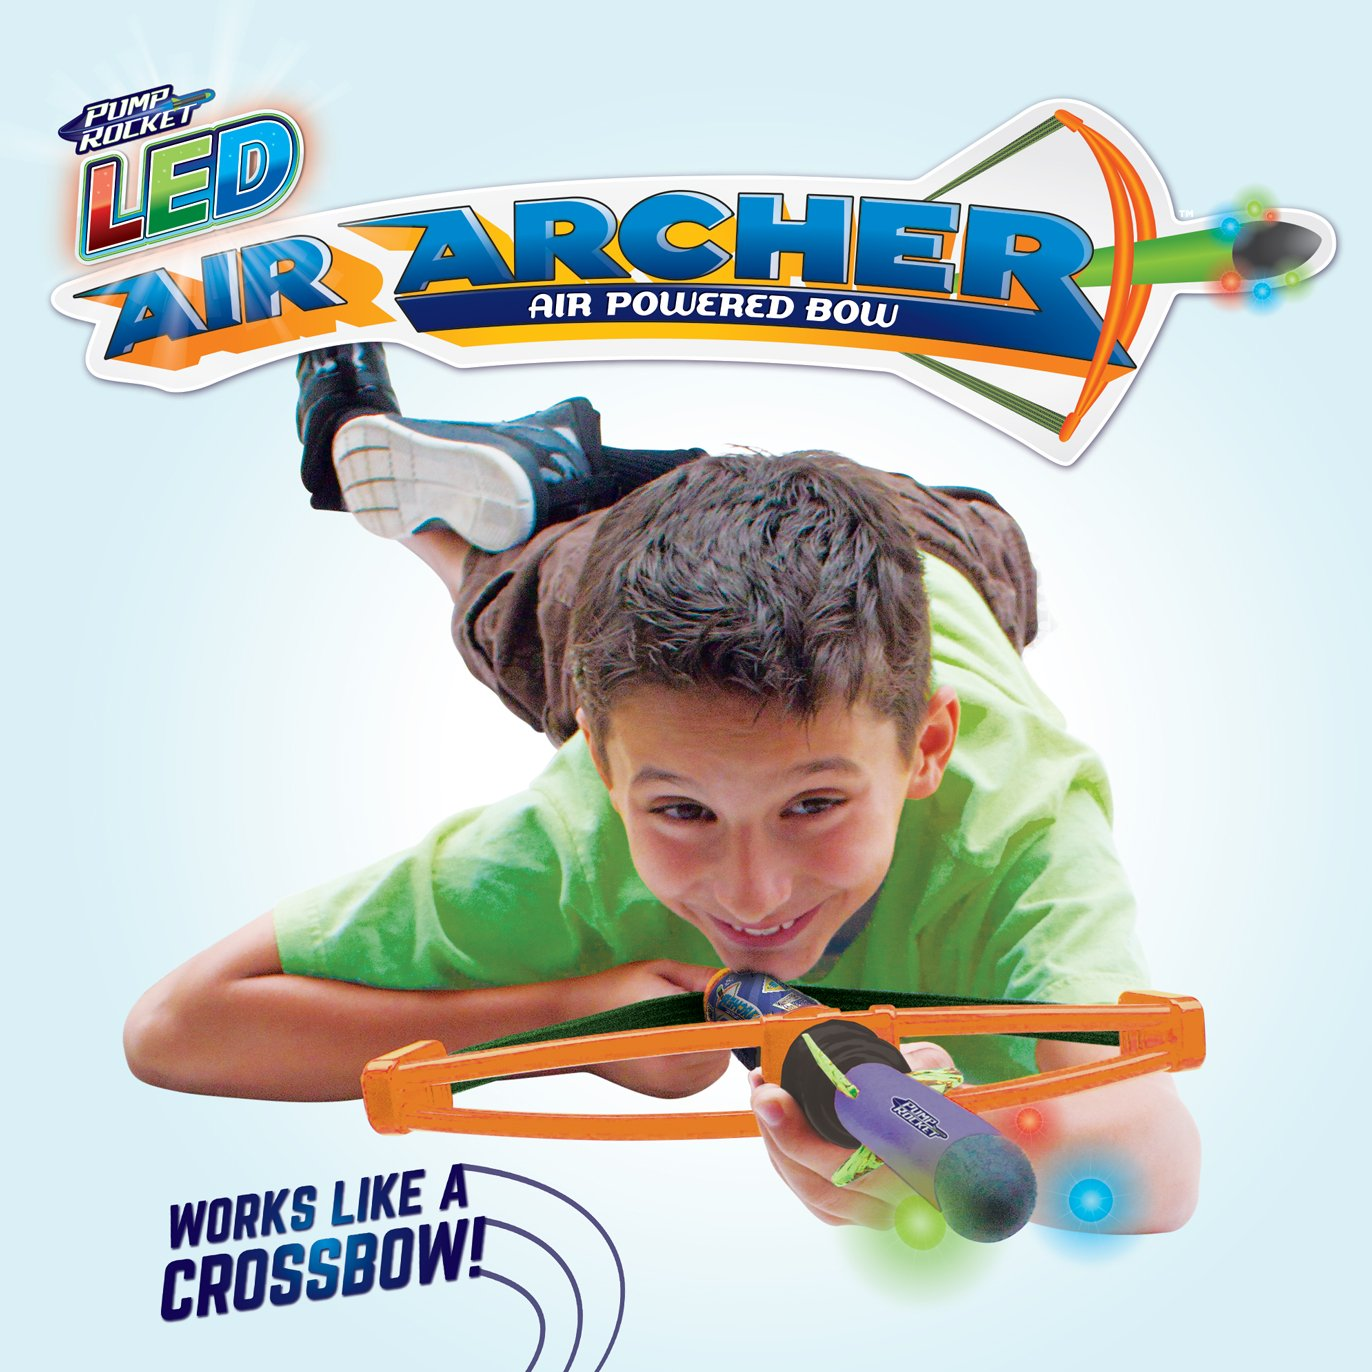 Geospace Pump Rocket LED Air Archer Air-Powered Bow /& Rocket Set with EZ-Pull Bungee Power 1 Launcher and 1 Rocket